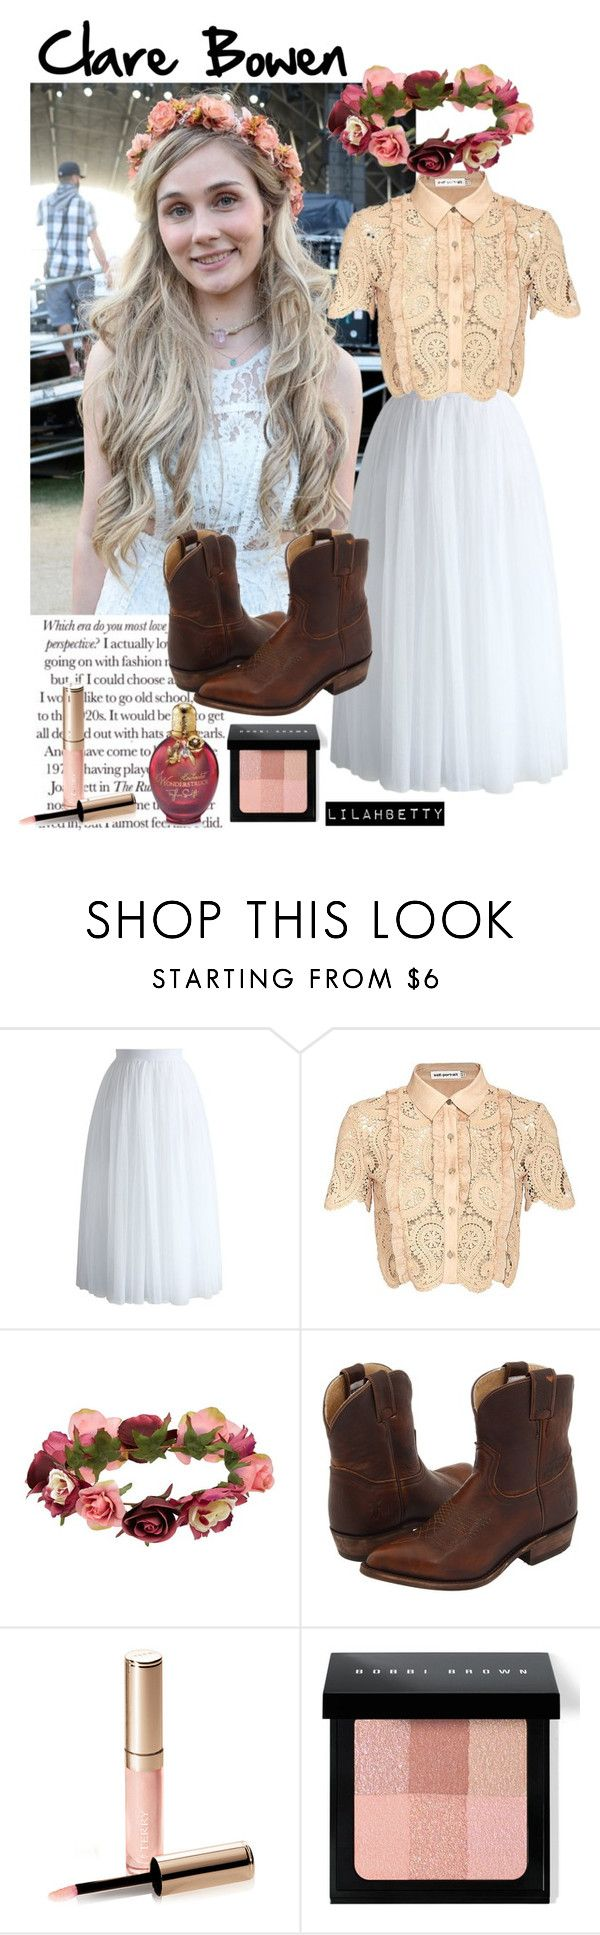 """""""Clare Bowen."""" by lilahbetty on Polyvore featuring Chicwish, self-portrait, Forever 21, Frye, By Terry, Bobbi Brown Cosmetics and country"""